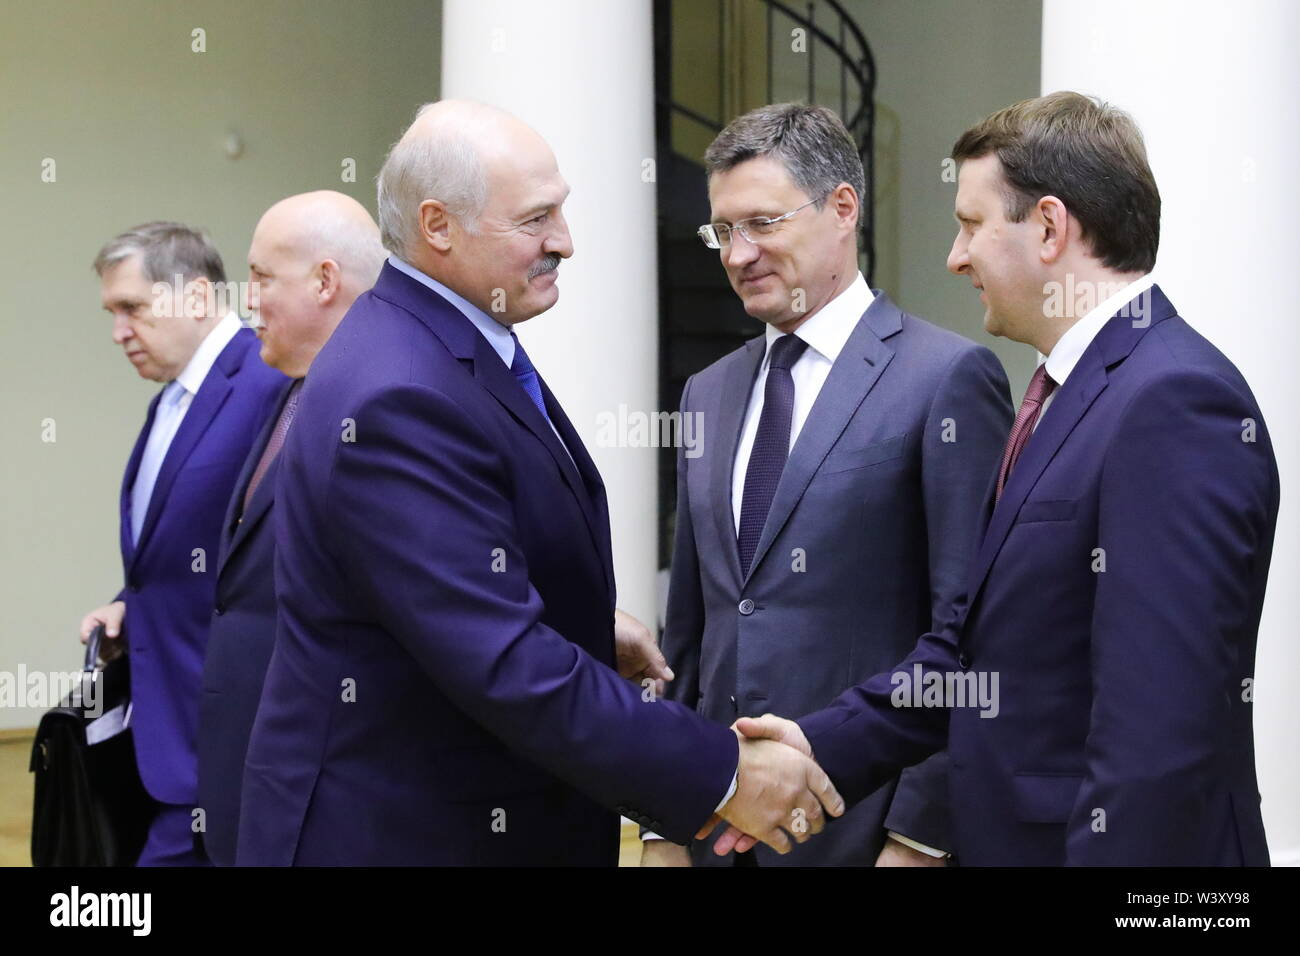 St Petersburg, Russia. 18th July, 2019. ST PETERSBURG, RUSSIA - JULY 18, 2019: Belarus' President Alexander Lukashenko and Russia's Economic Development Minister Maxim Oreshkin (L-R front) shake hands as Russia's Energy Minister Alexander Novak (C) looks on during a meeting with Russia's President Vladimir Putin during a meeting at Tauride Palace. Mikhail Klimentyev/Russian Presidential Press and Information Office/TASS Credit: ITAR-TASS News Agency/Alamy Live News - Stock Image